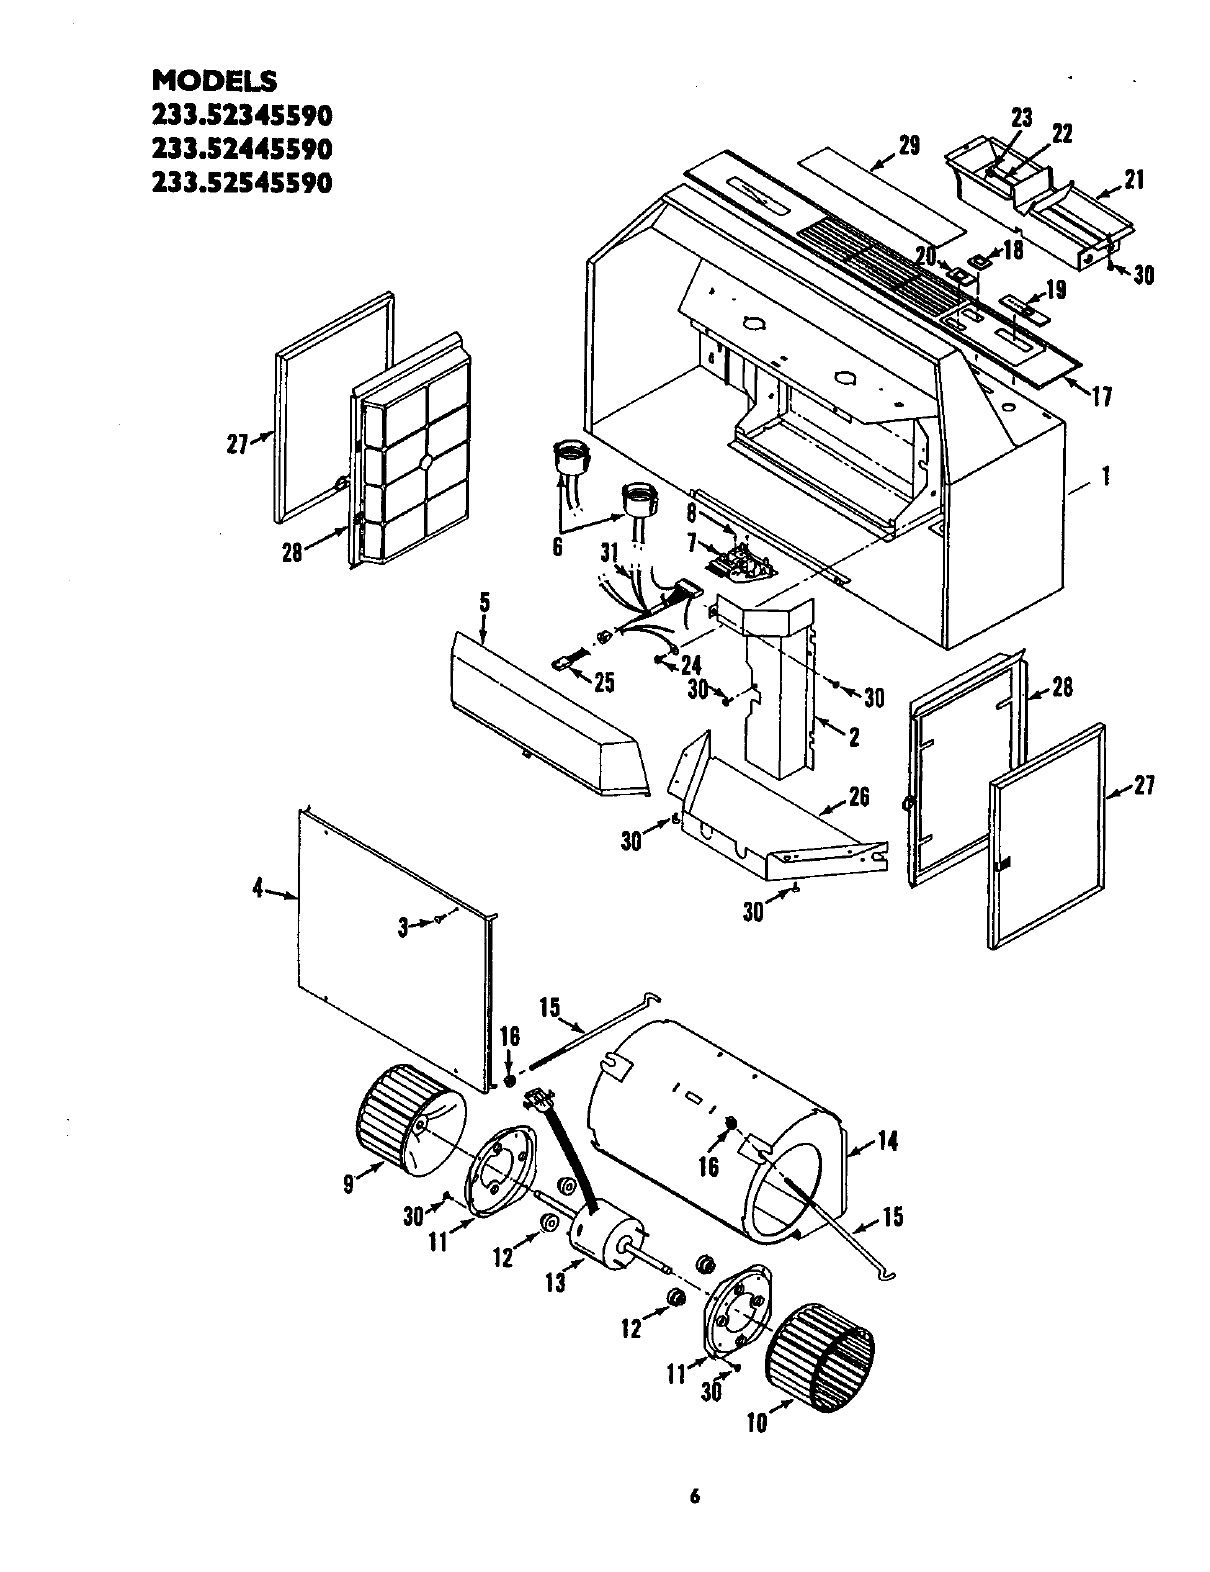 Page 2 of Kenmore Ventilation Hood 233.52345590 User Guide